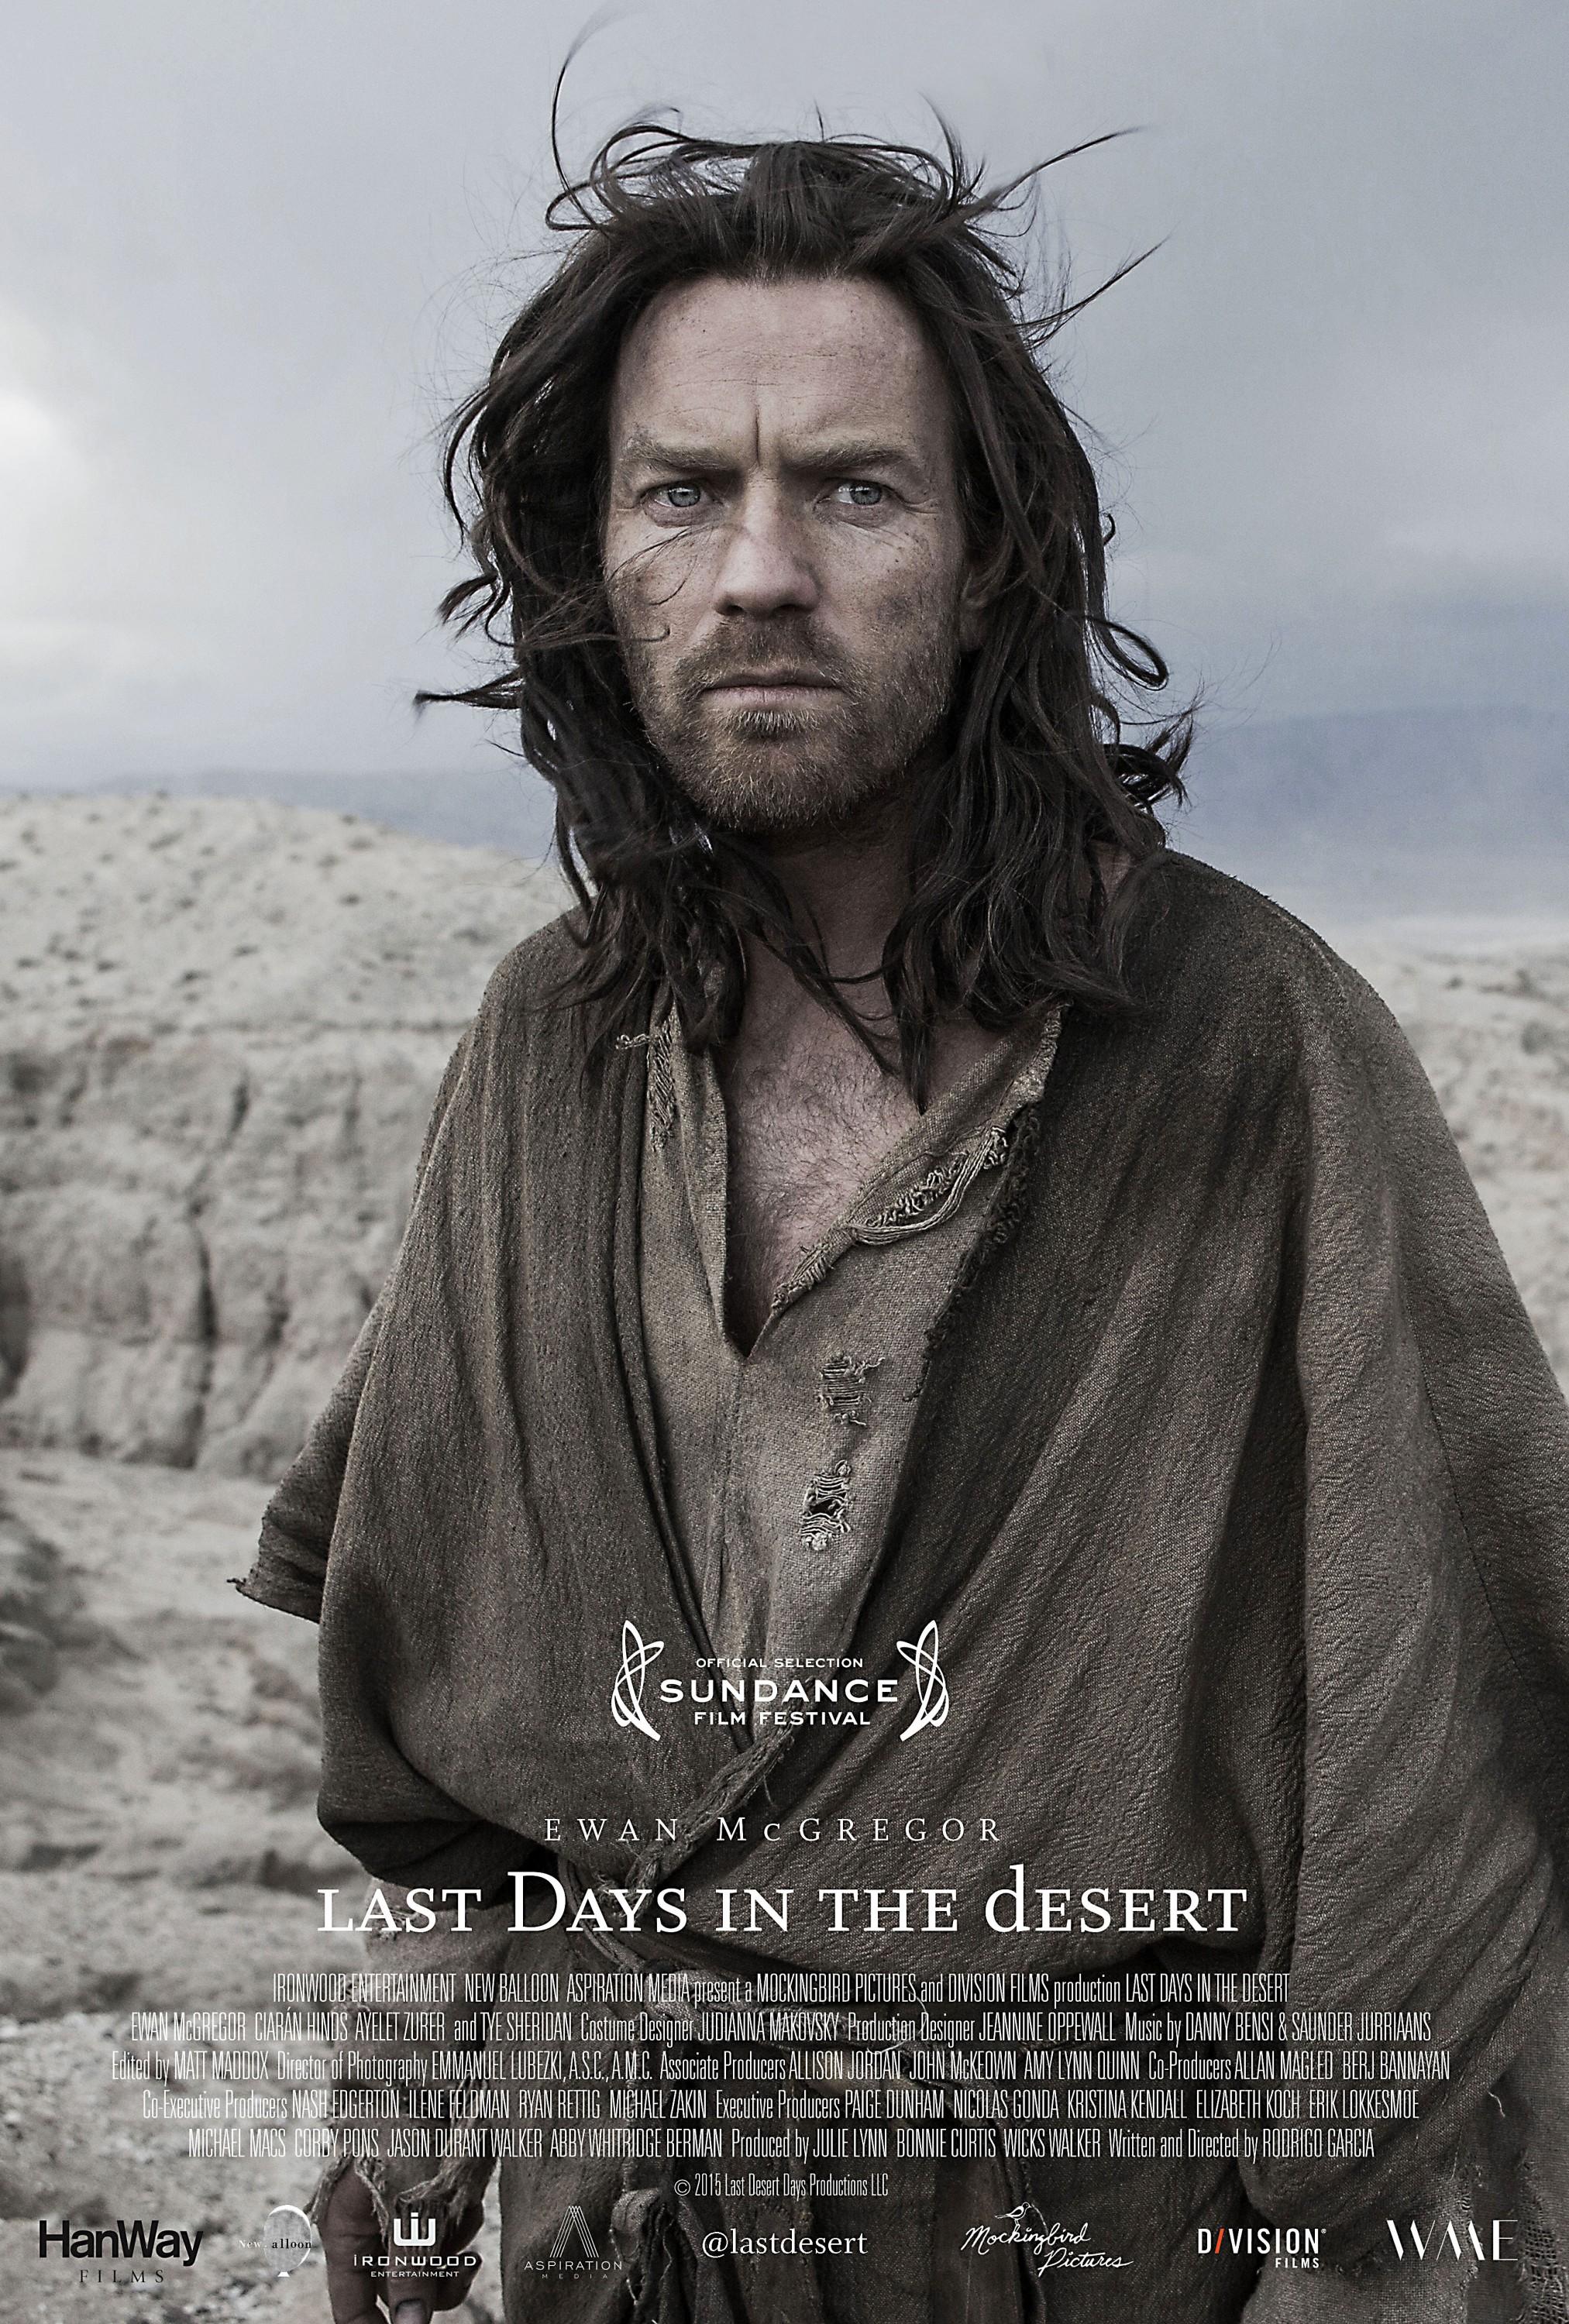 Last Days in the Desert-Official Poster XXLG-22JANEIRO2015-00